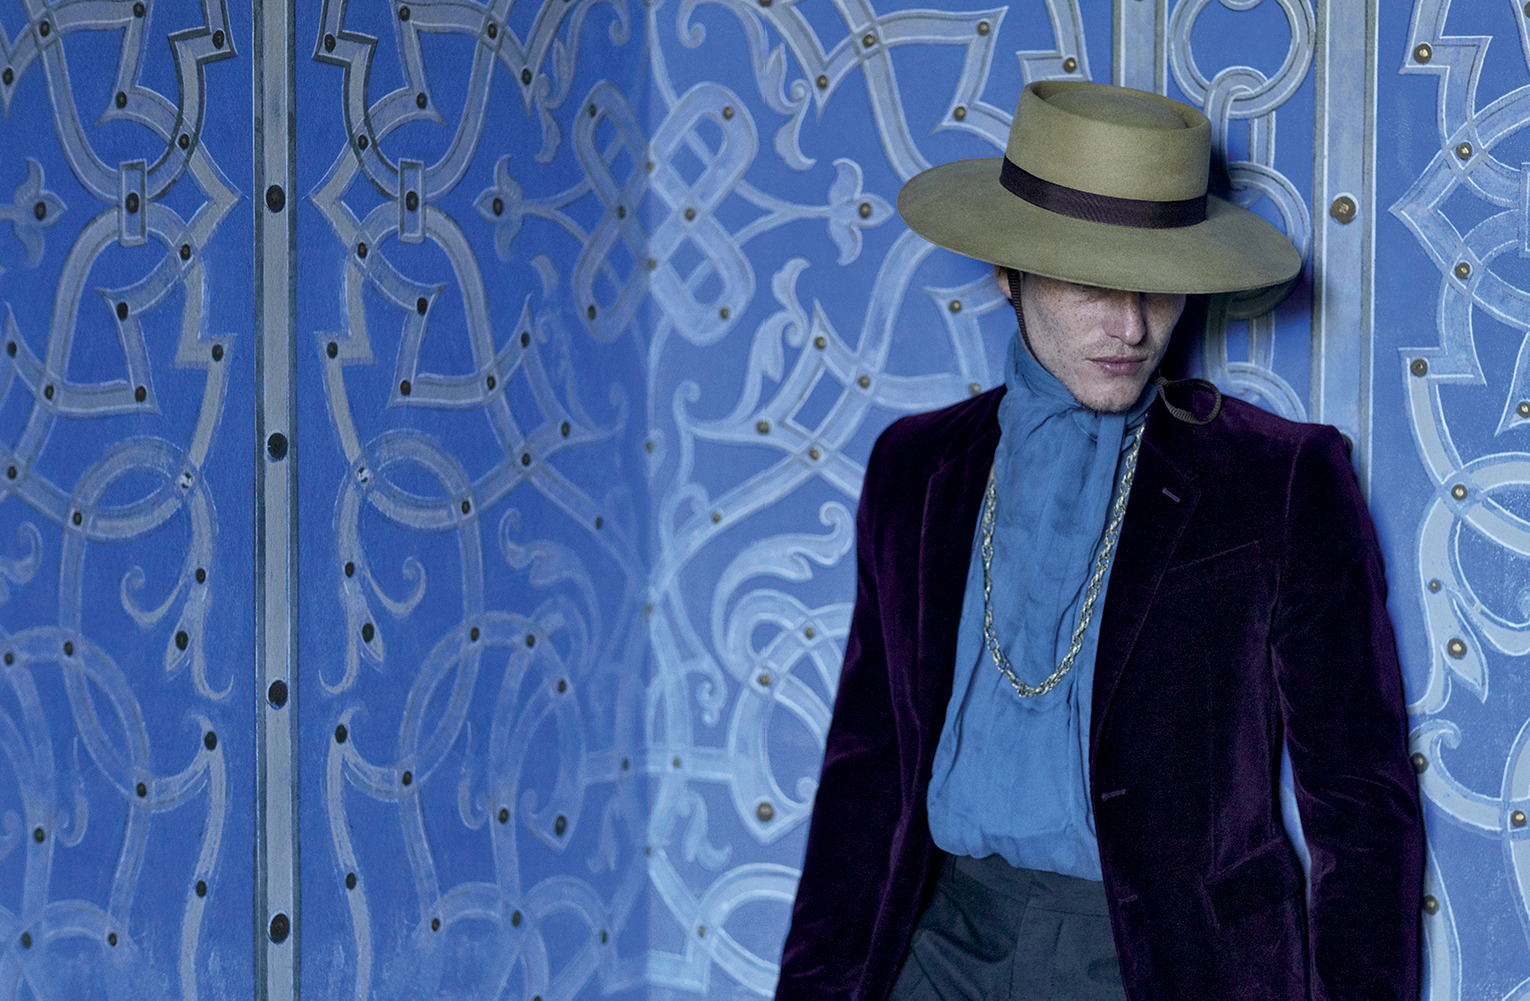 Dark amethyst tailored velvet jacket BURBERRY PRORSUM, dark green large straight-cut trousers in brushed cotton LANVIN, silk foulard, gaucho hat and moroccan necklace MELET MERCANTILE